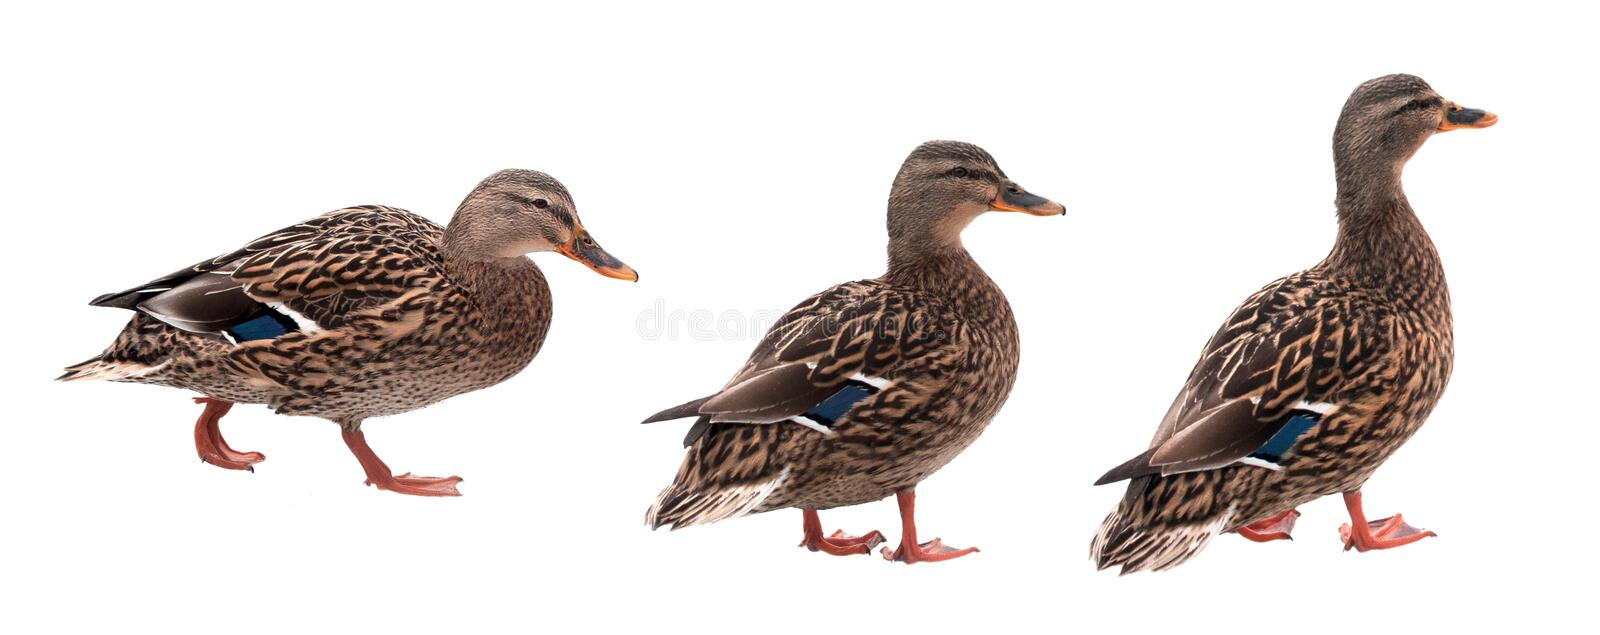 Mallard duck with clipping path isolated on white background royalty free stock photos